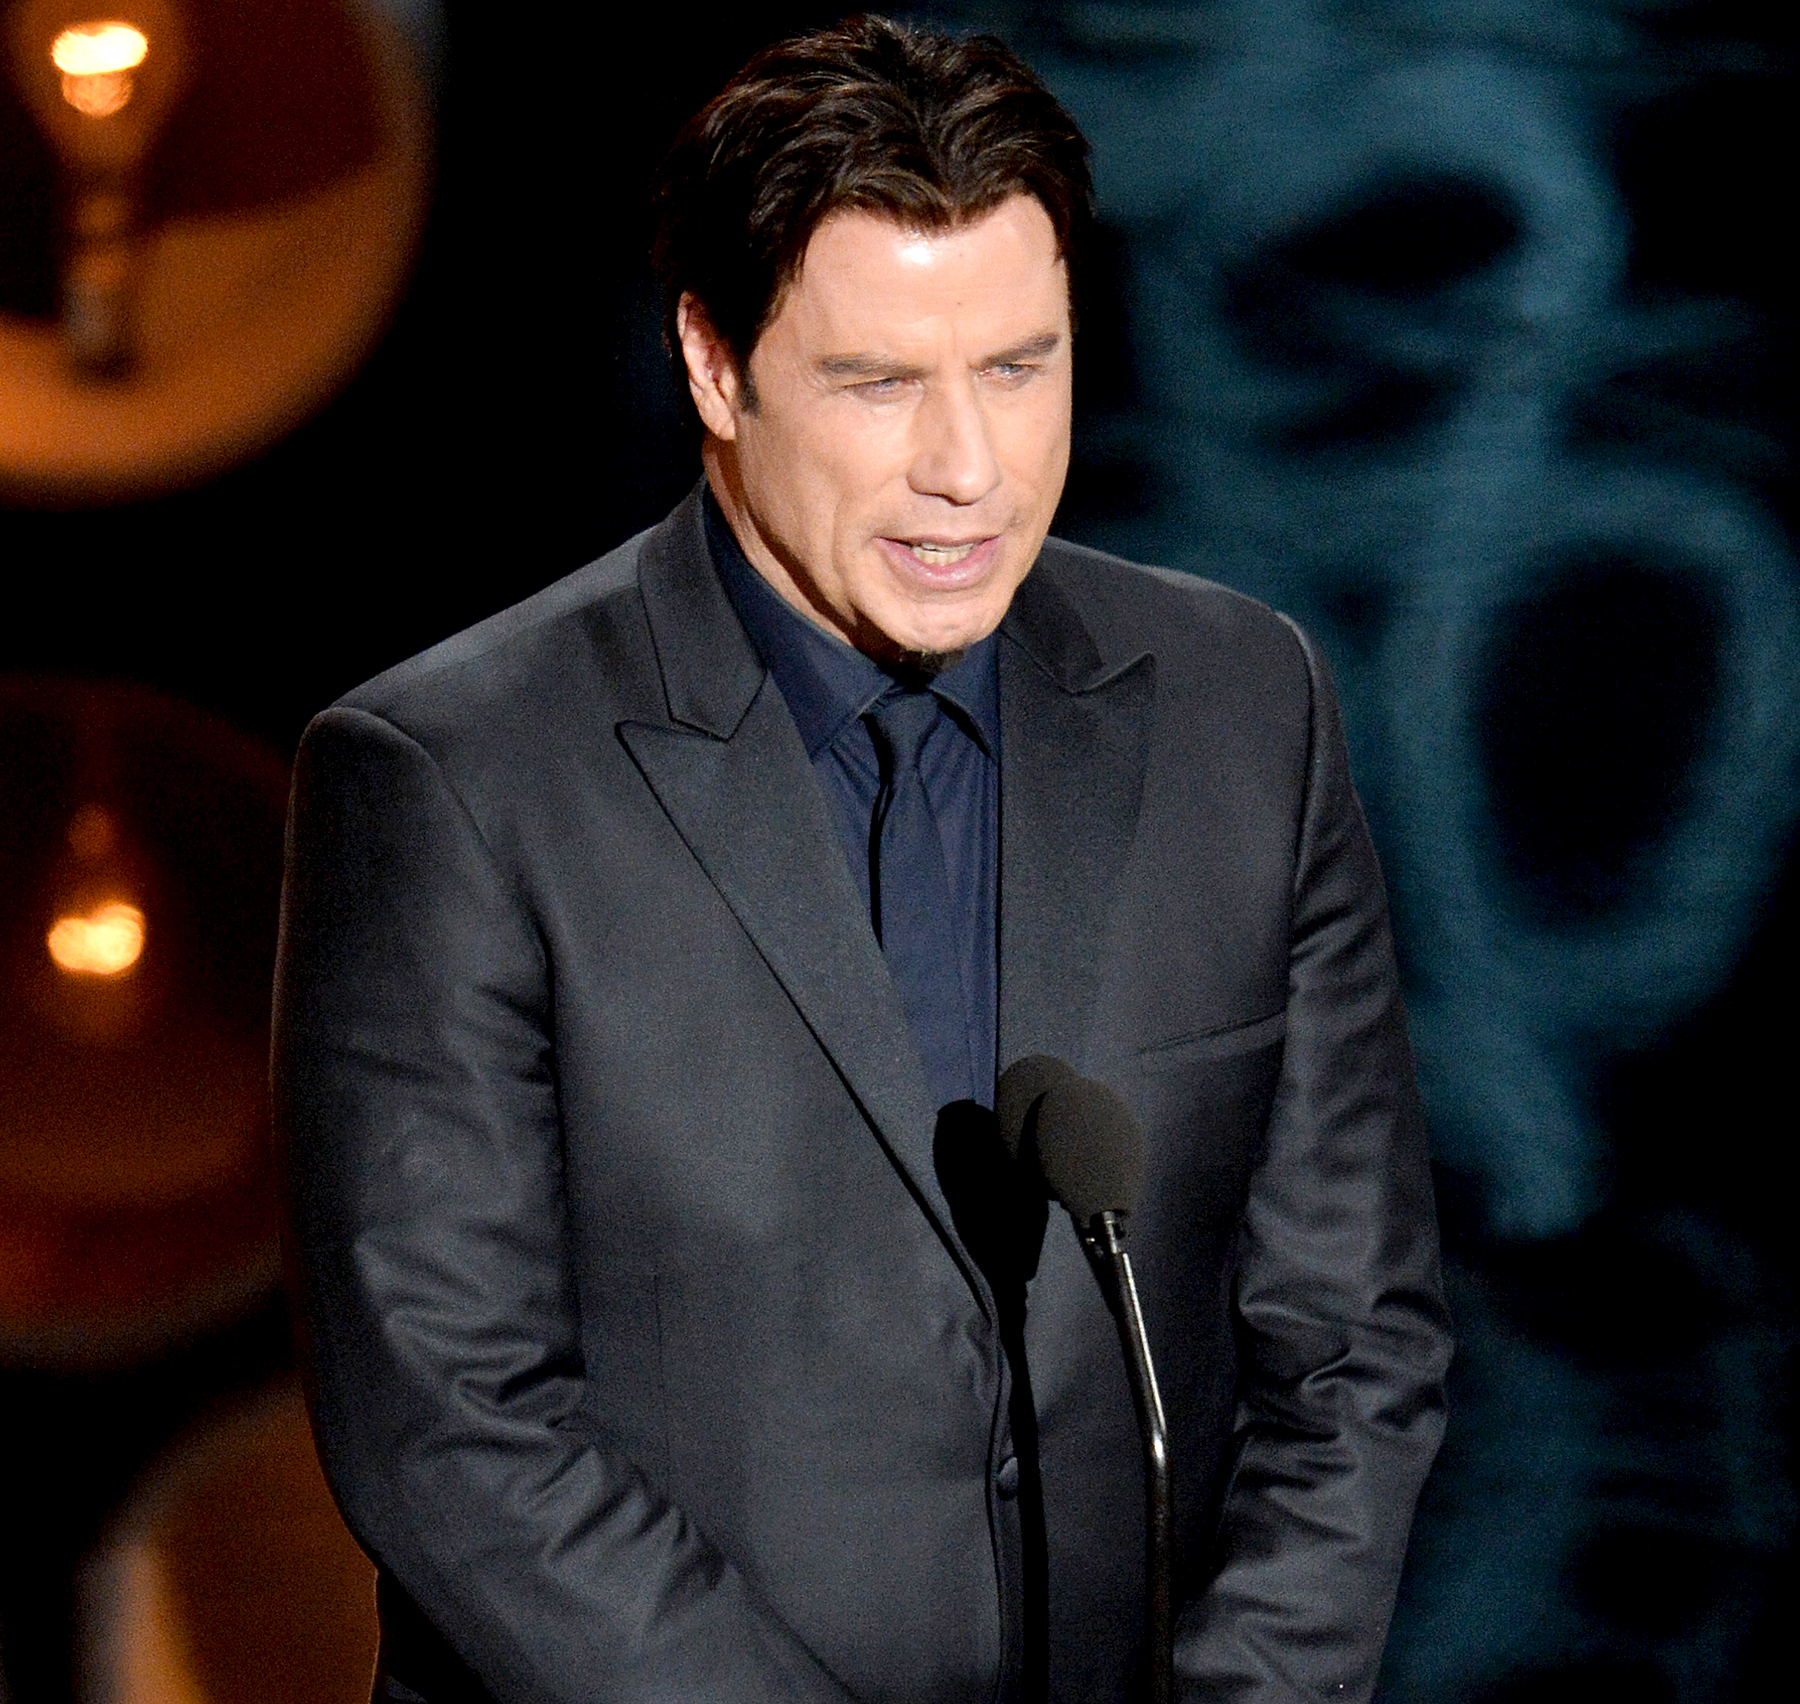 John Travolta speaks onstage during the Oscars at the Dolby Theatre on March 2, 2014 in Hollywood, California.